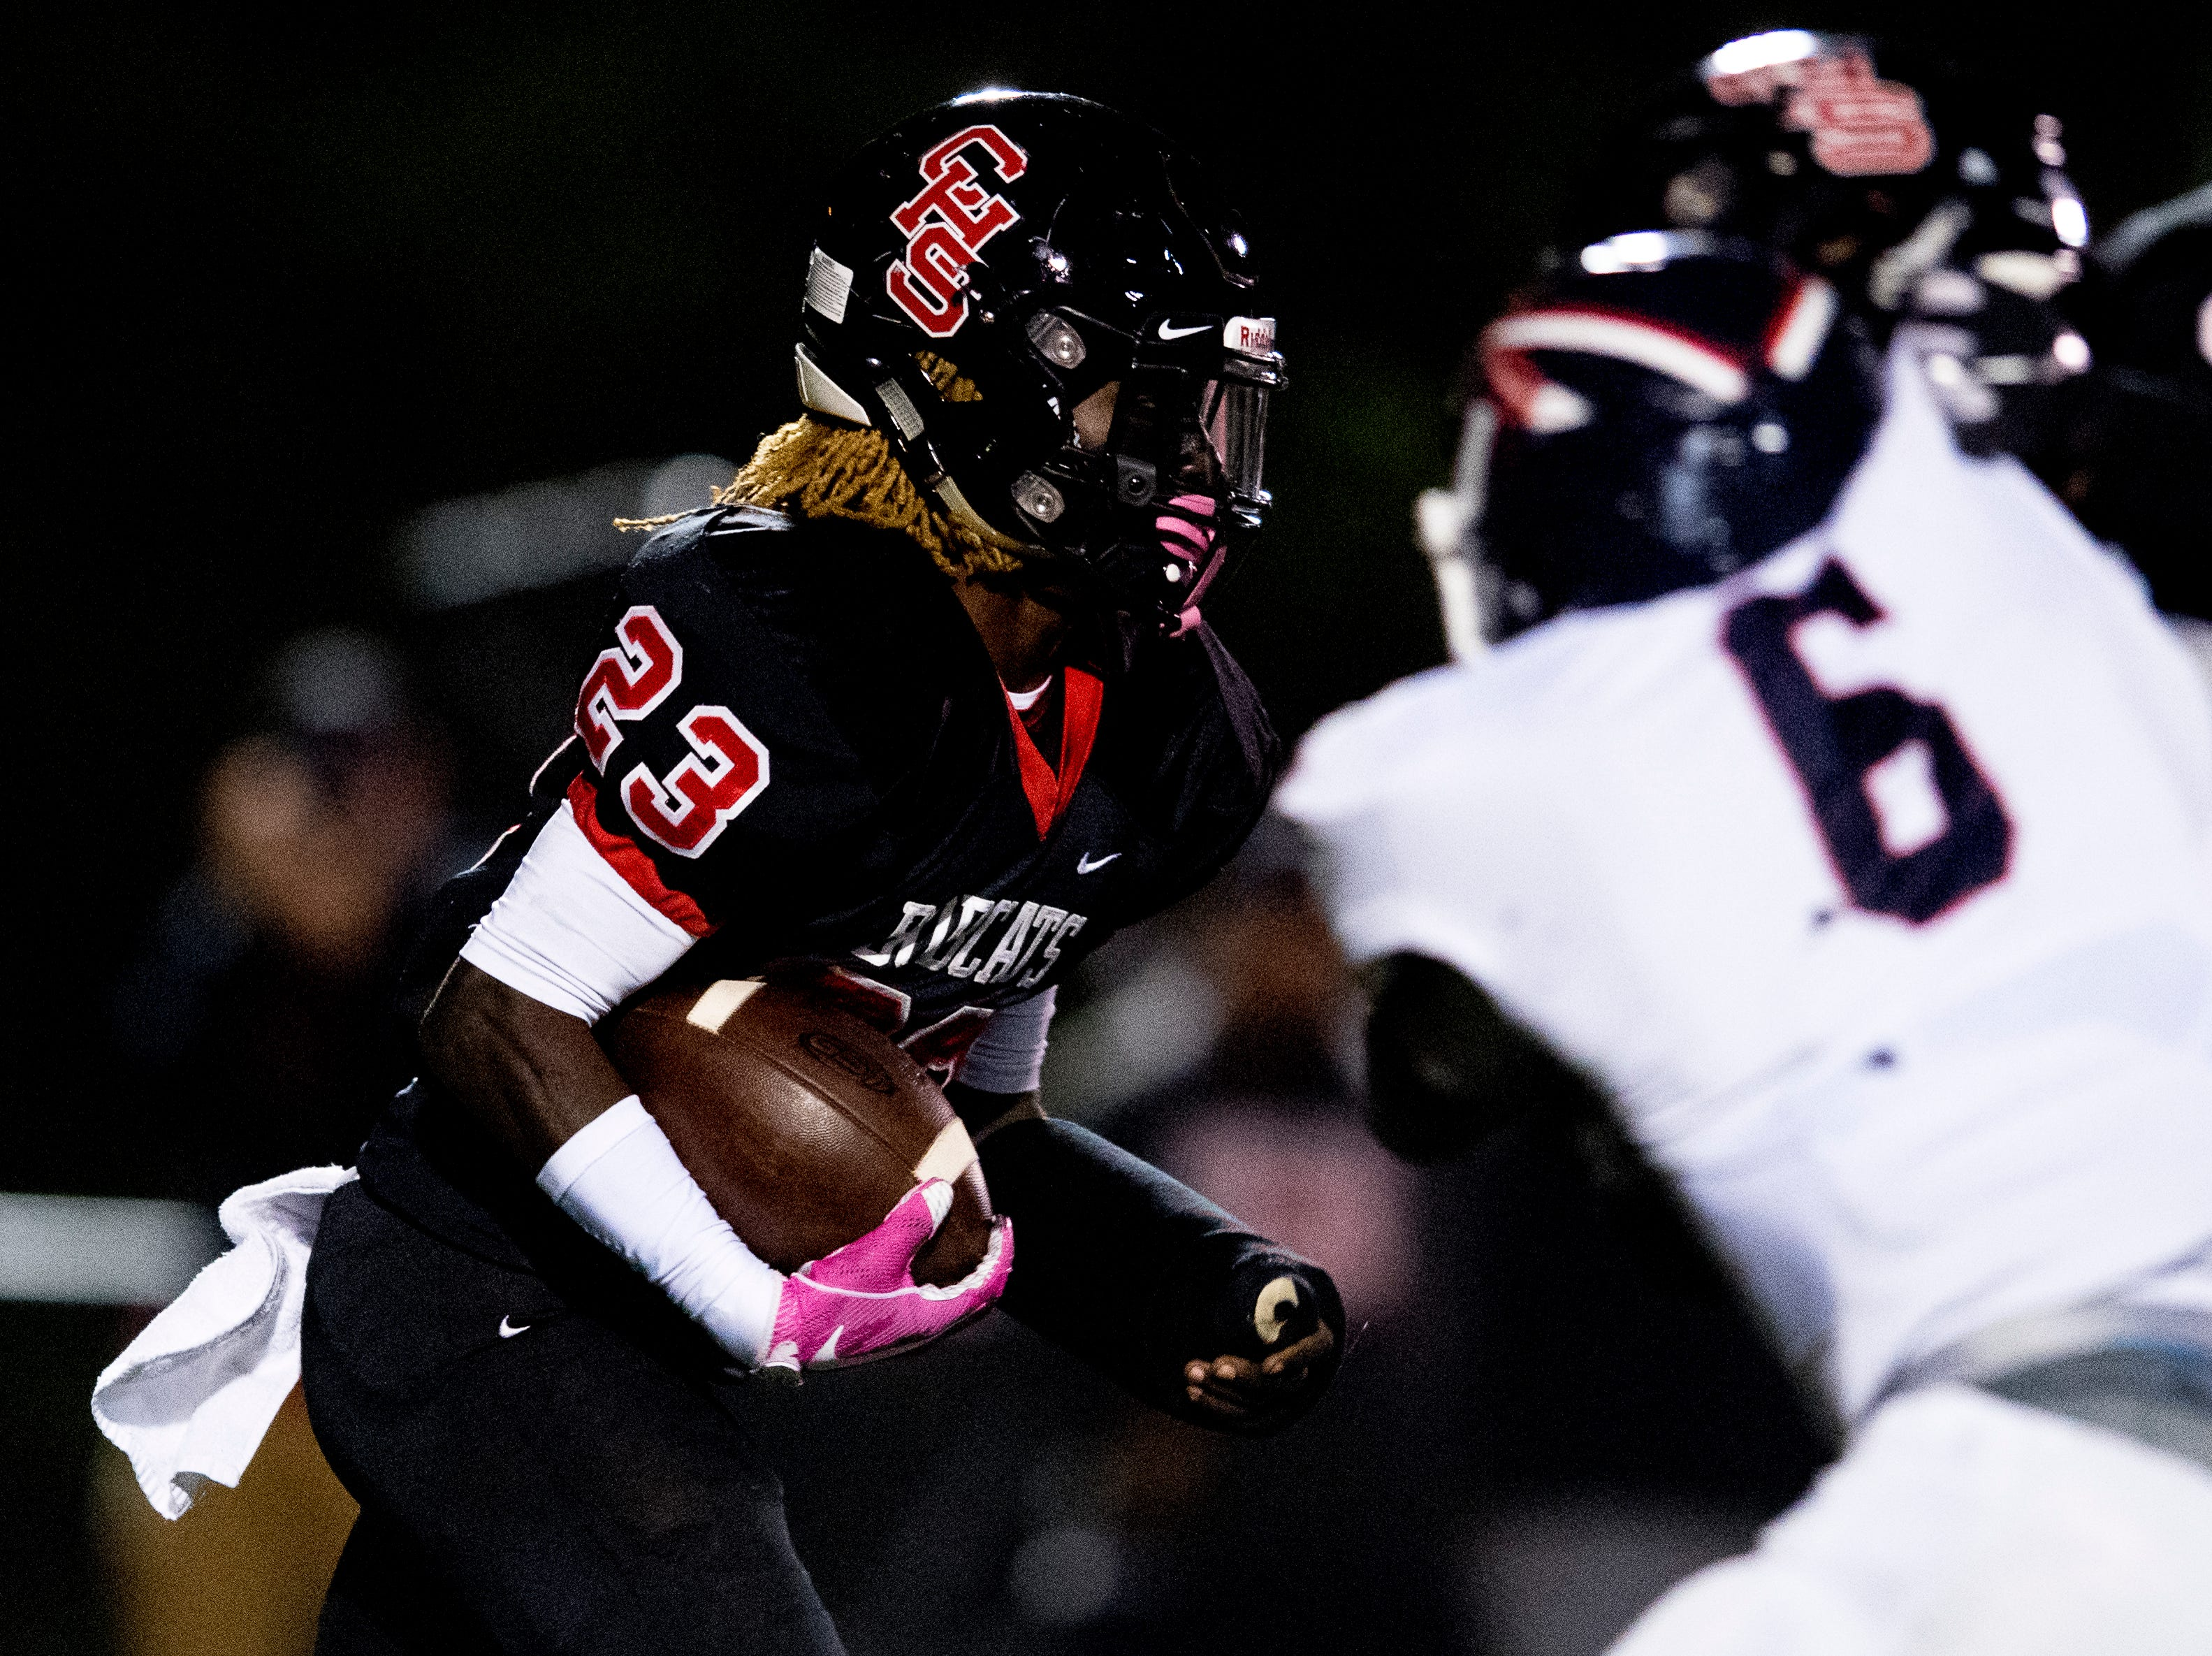 Central's Trey'sean Moore (23) runs with the ball during a football game between Central and South-Doyle at Central High School in Knoxville, Tennessee on Friday, October 19, 2018.